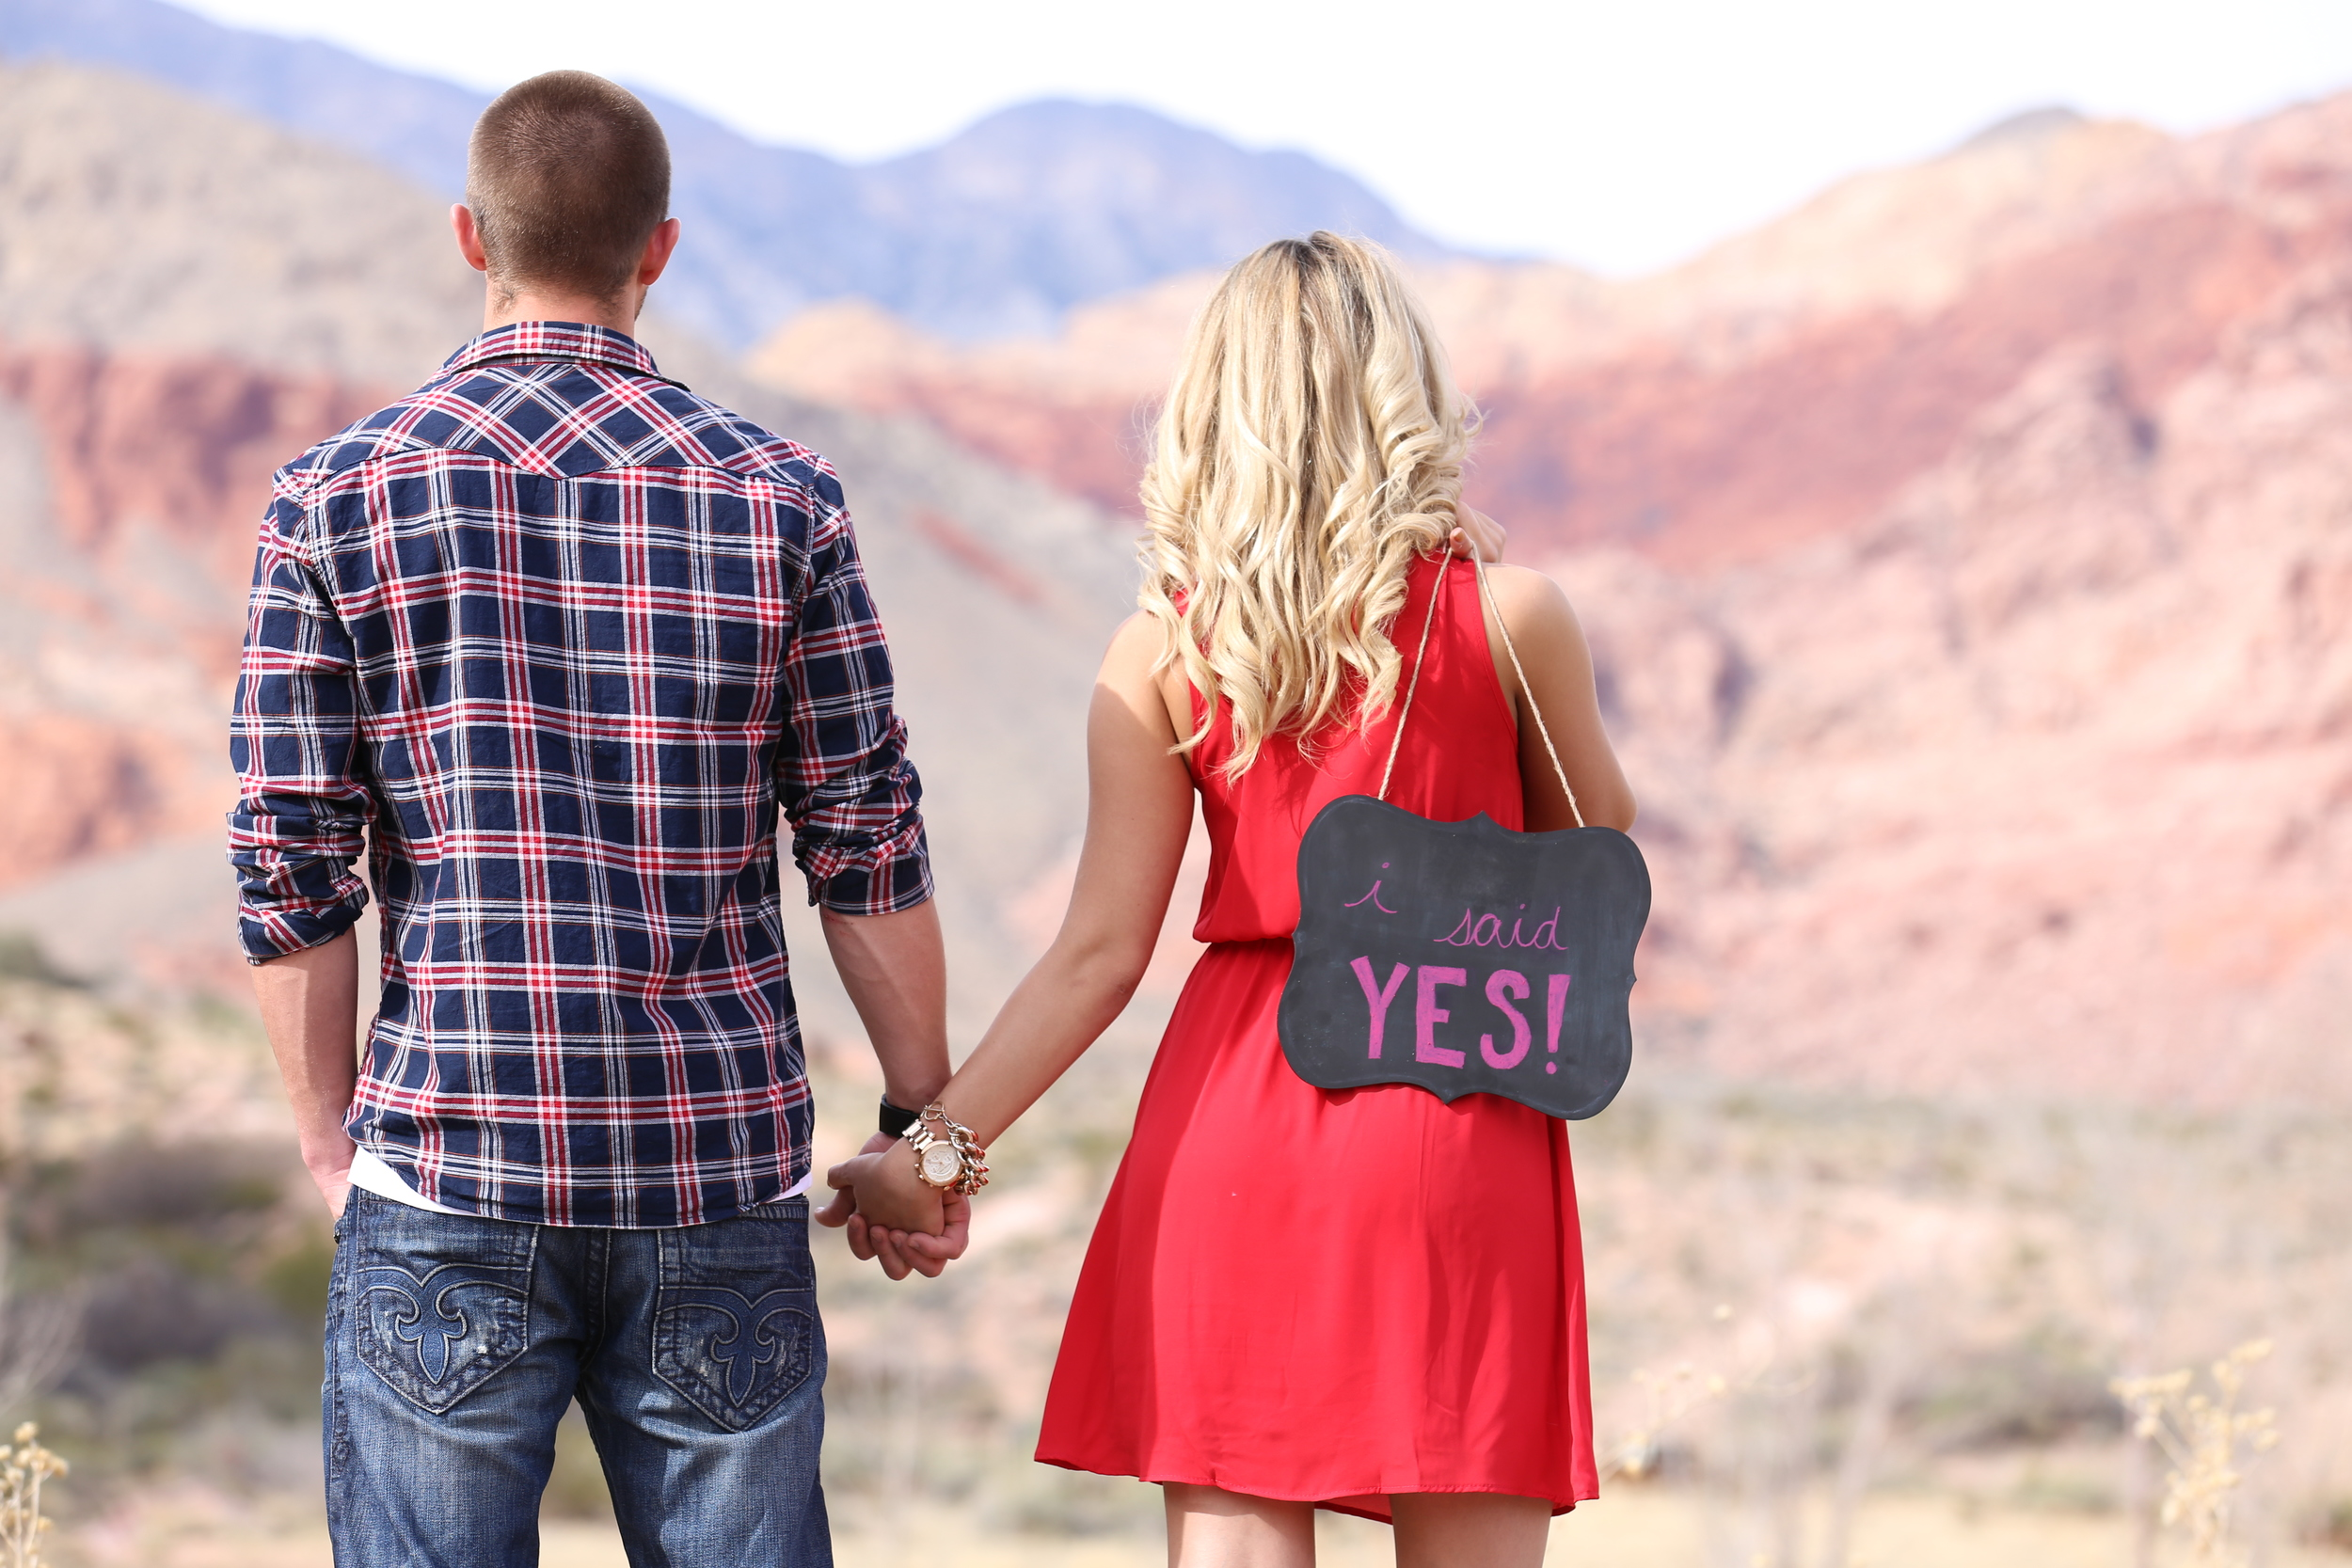 She said YES! Of course...Photo byCorey Malden for ImagoDei127Photography.